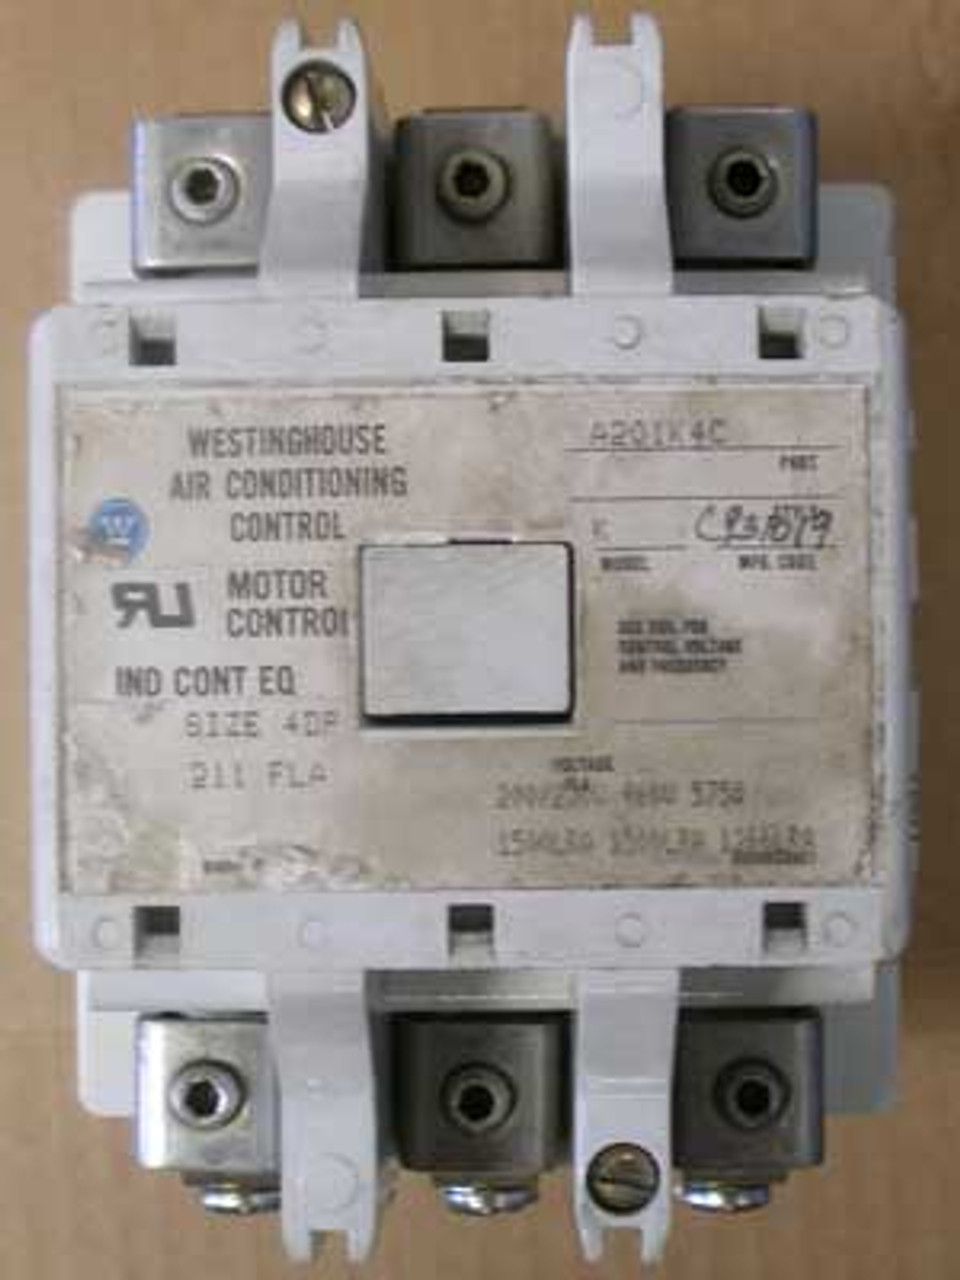 Westinghouse A201K4C Air Cond. Control Motor Size 4DP 211A - Used